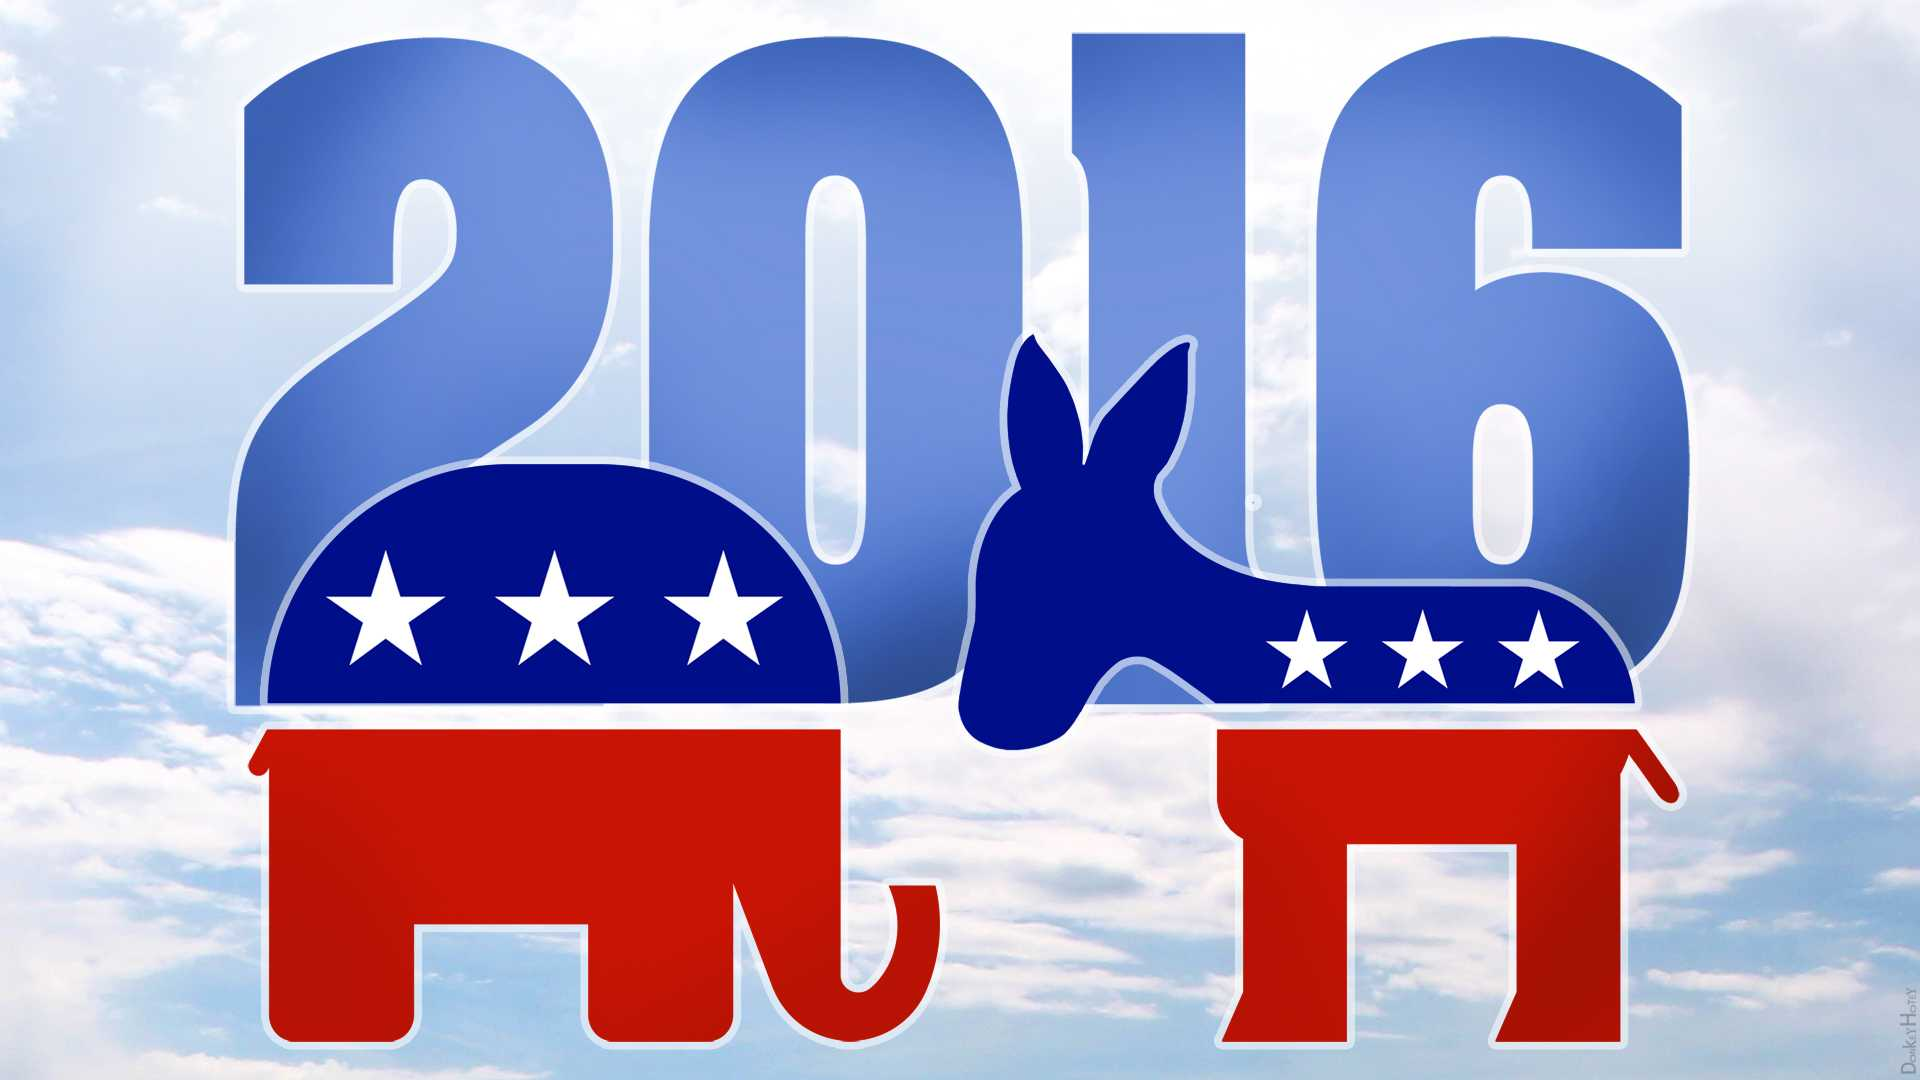 Pictured above are the symbols for the GOP and Democratic Party.